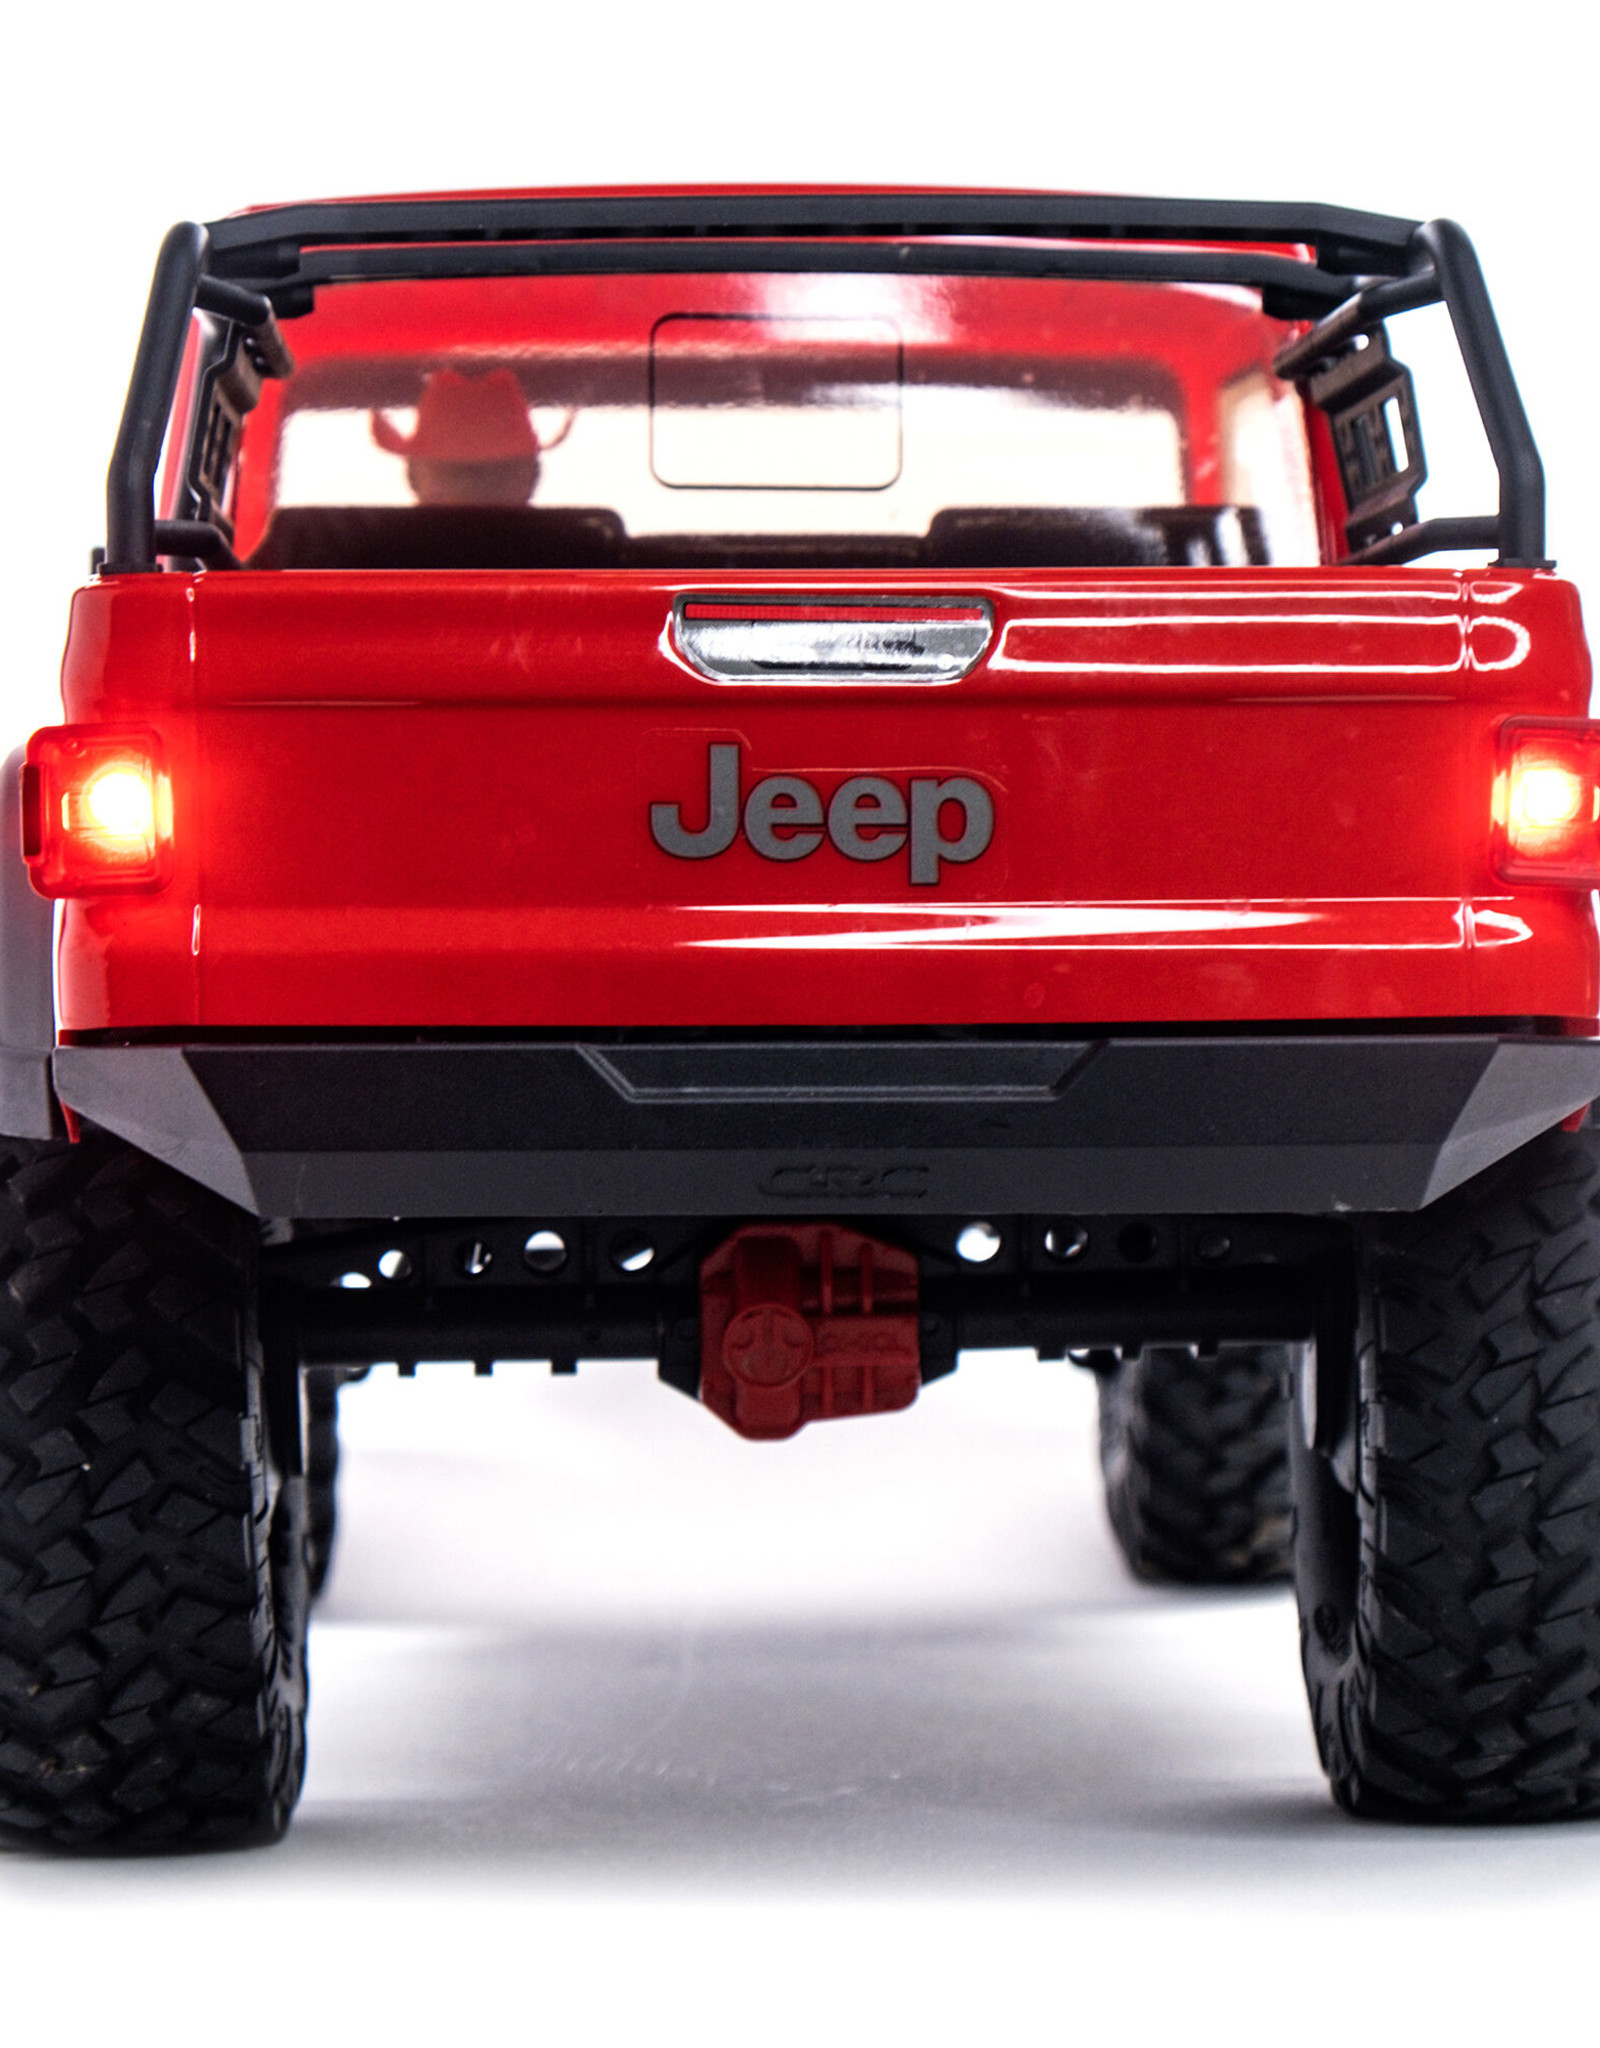 Axial Axial SCX10 III Jeep JT Gladiator w/Portals 1/10 RTR Red